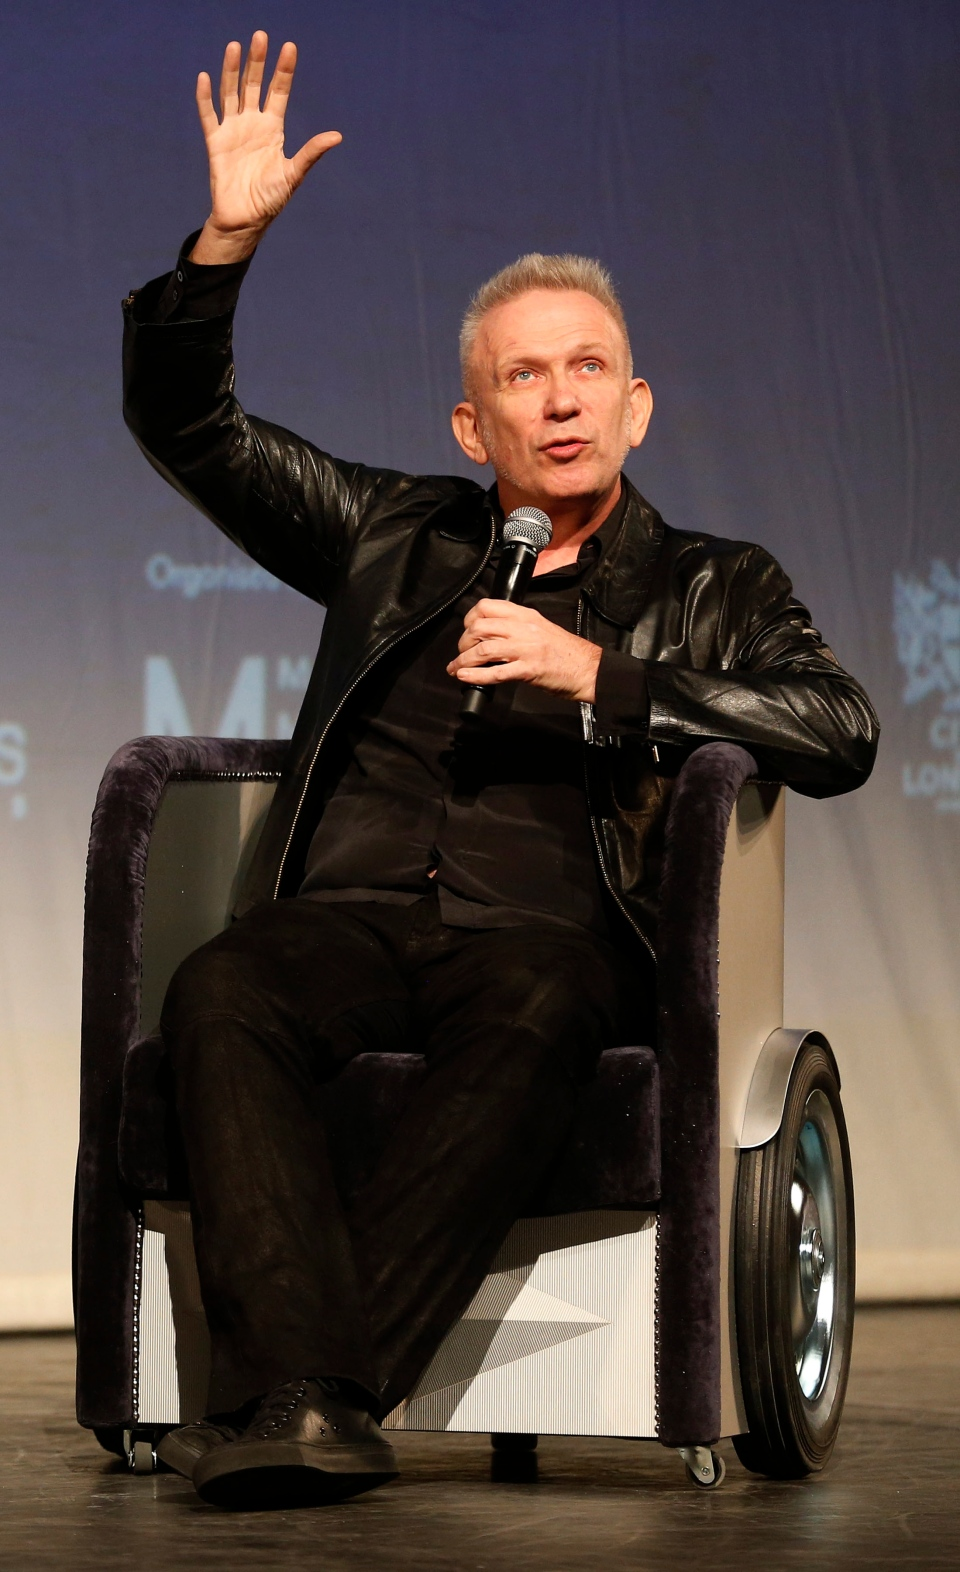 French couturier Jean Paul Gaultier gestures as he speaks to the media in a Q&A session during the launch his exhibition 'The Fashion World of Jean Paul Gaultier : From the Sidewalk to the Catwalk' at the Barbican Art Gallery in London, Tuesday, April 8, 2014. (AP / Sang Tan)